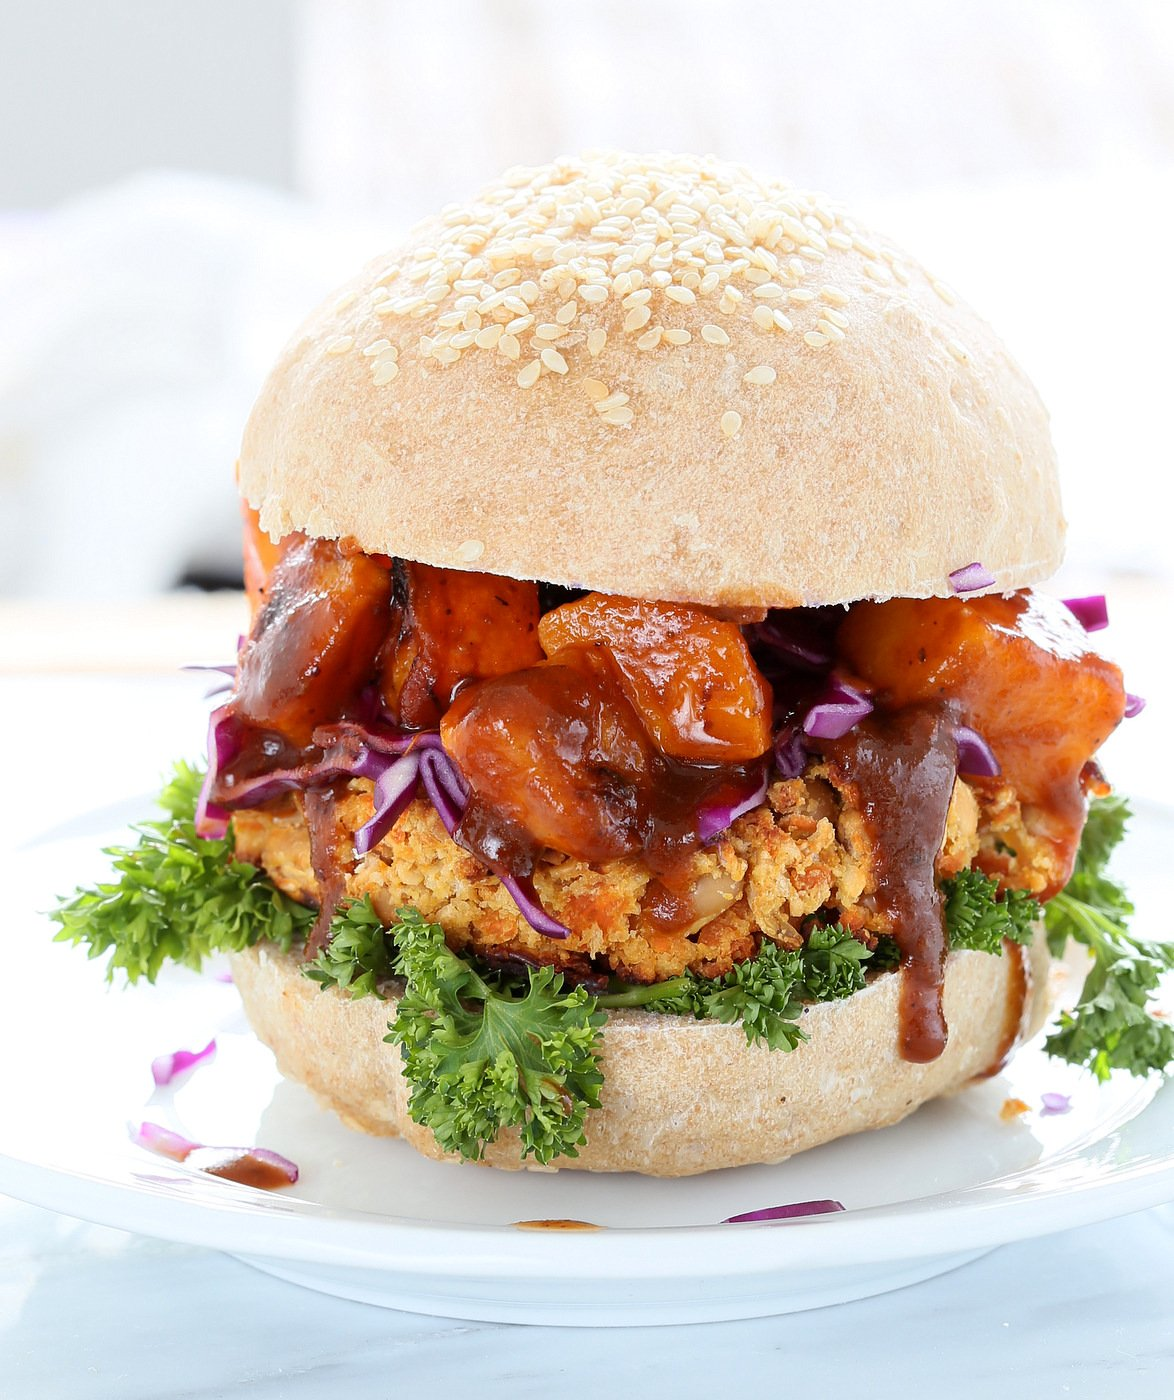 White Bean Burgers with Carrots, Peanuts and thai flavors. Topped with sweet and sour Butternut squash. Asian Peanut Bean Burgers. Vegan Gluten free Option | VeganRicha.com